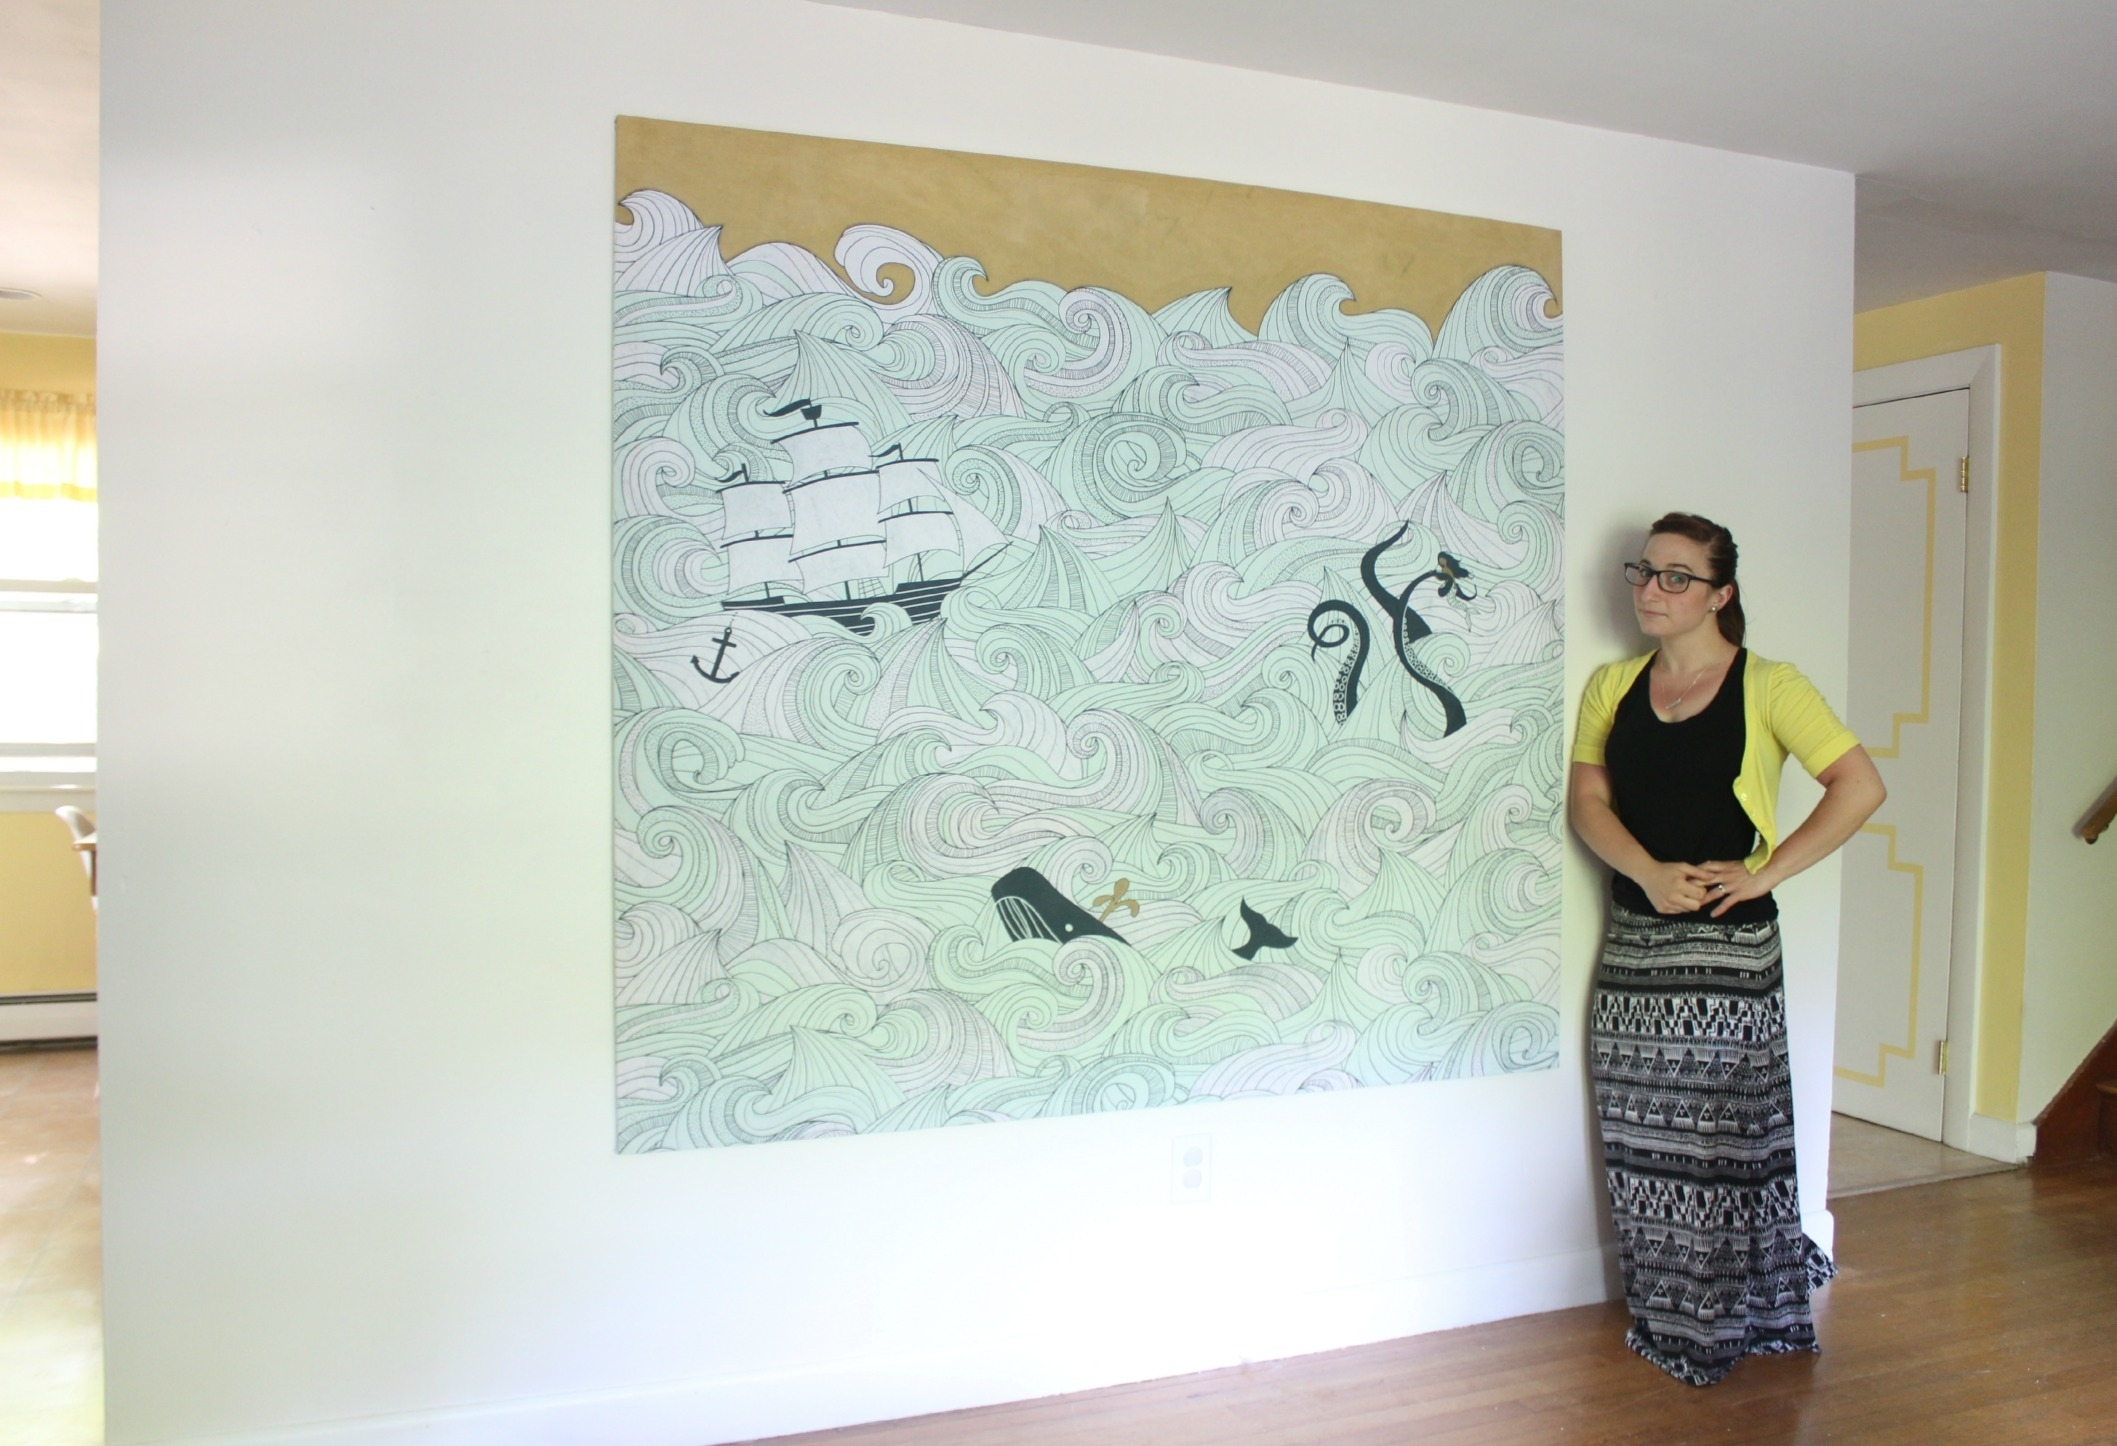 Diy Stretched Fabric Canvas (With A Shower Curtain!) | Stephanie With Recent Shower Curtain Wall Art (View 10 of 20)